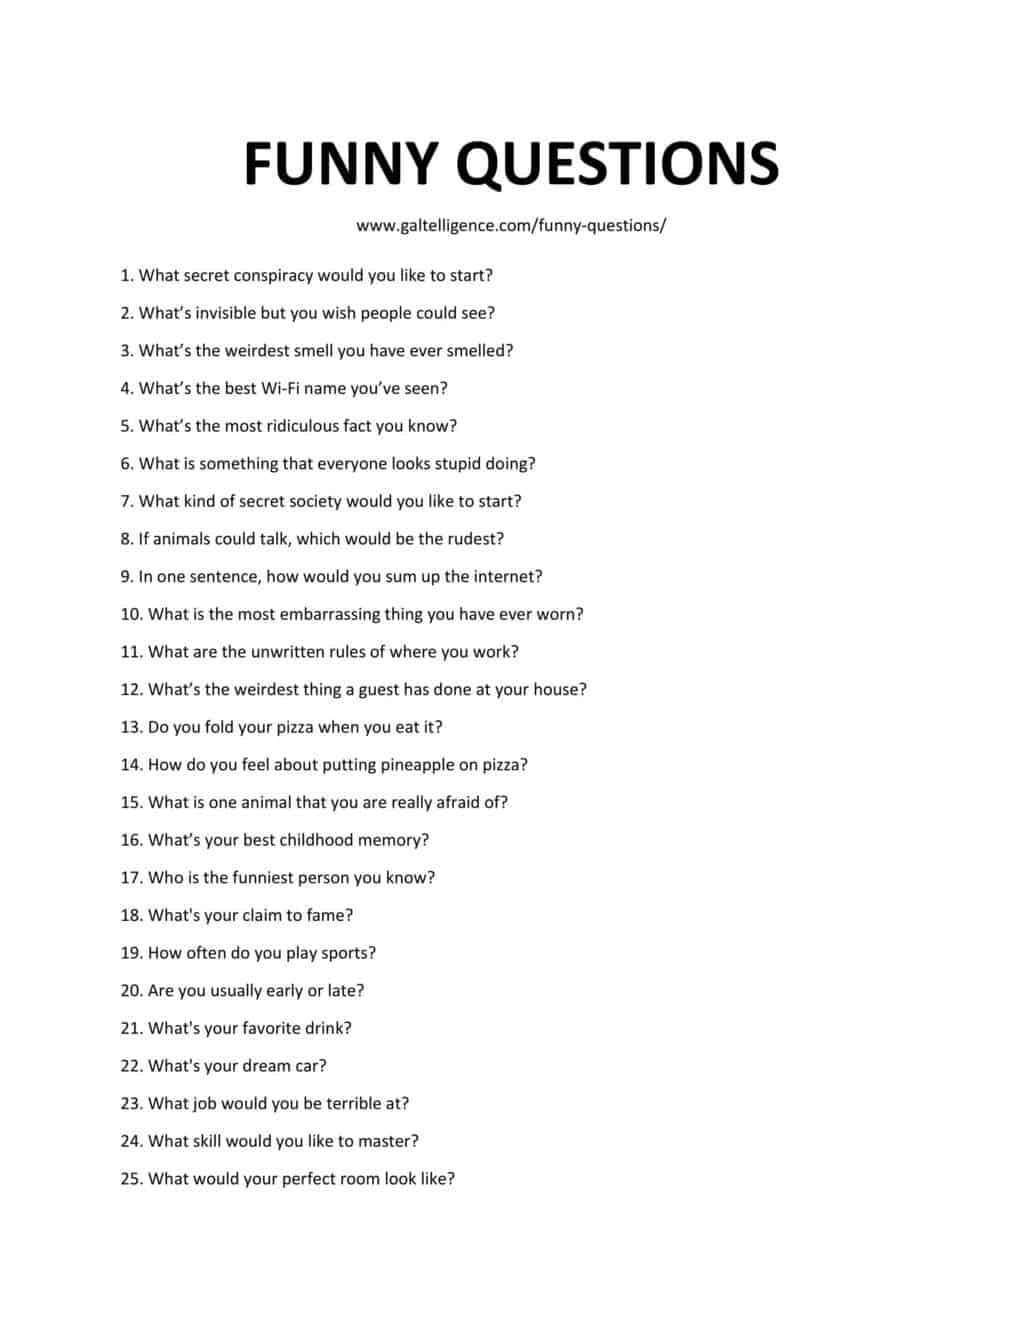 Downloadable list of Funny Questions